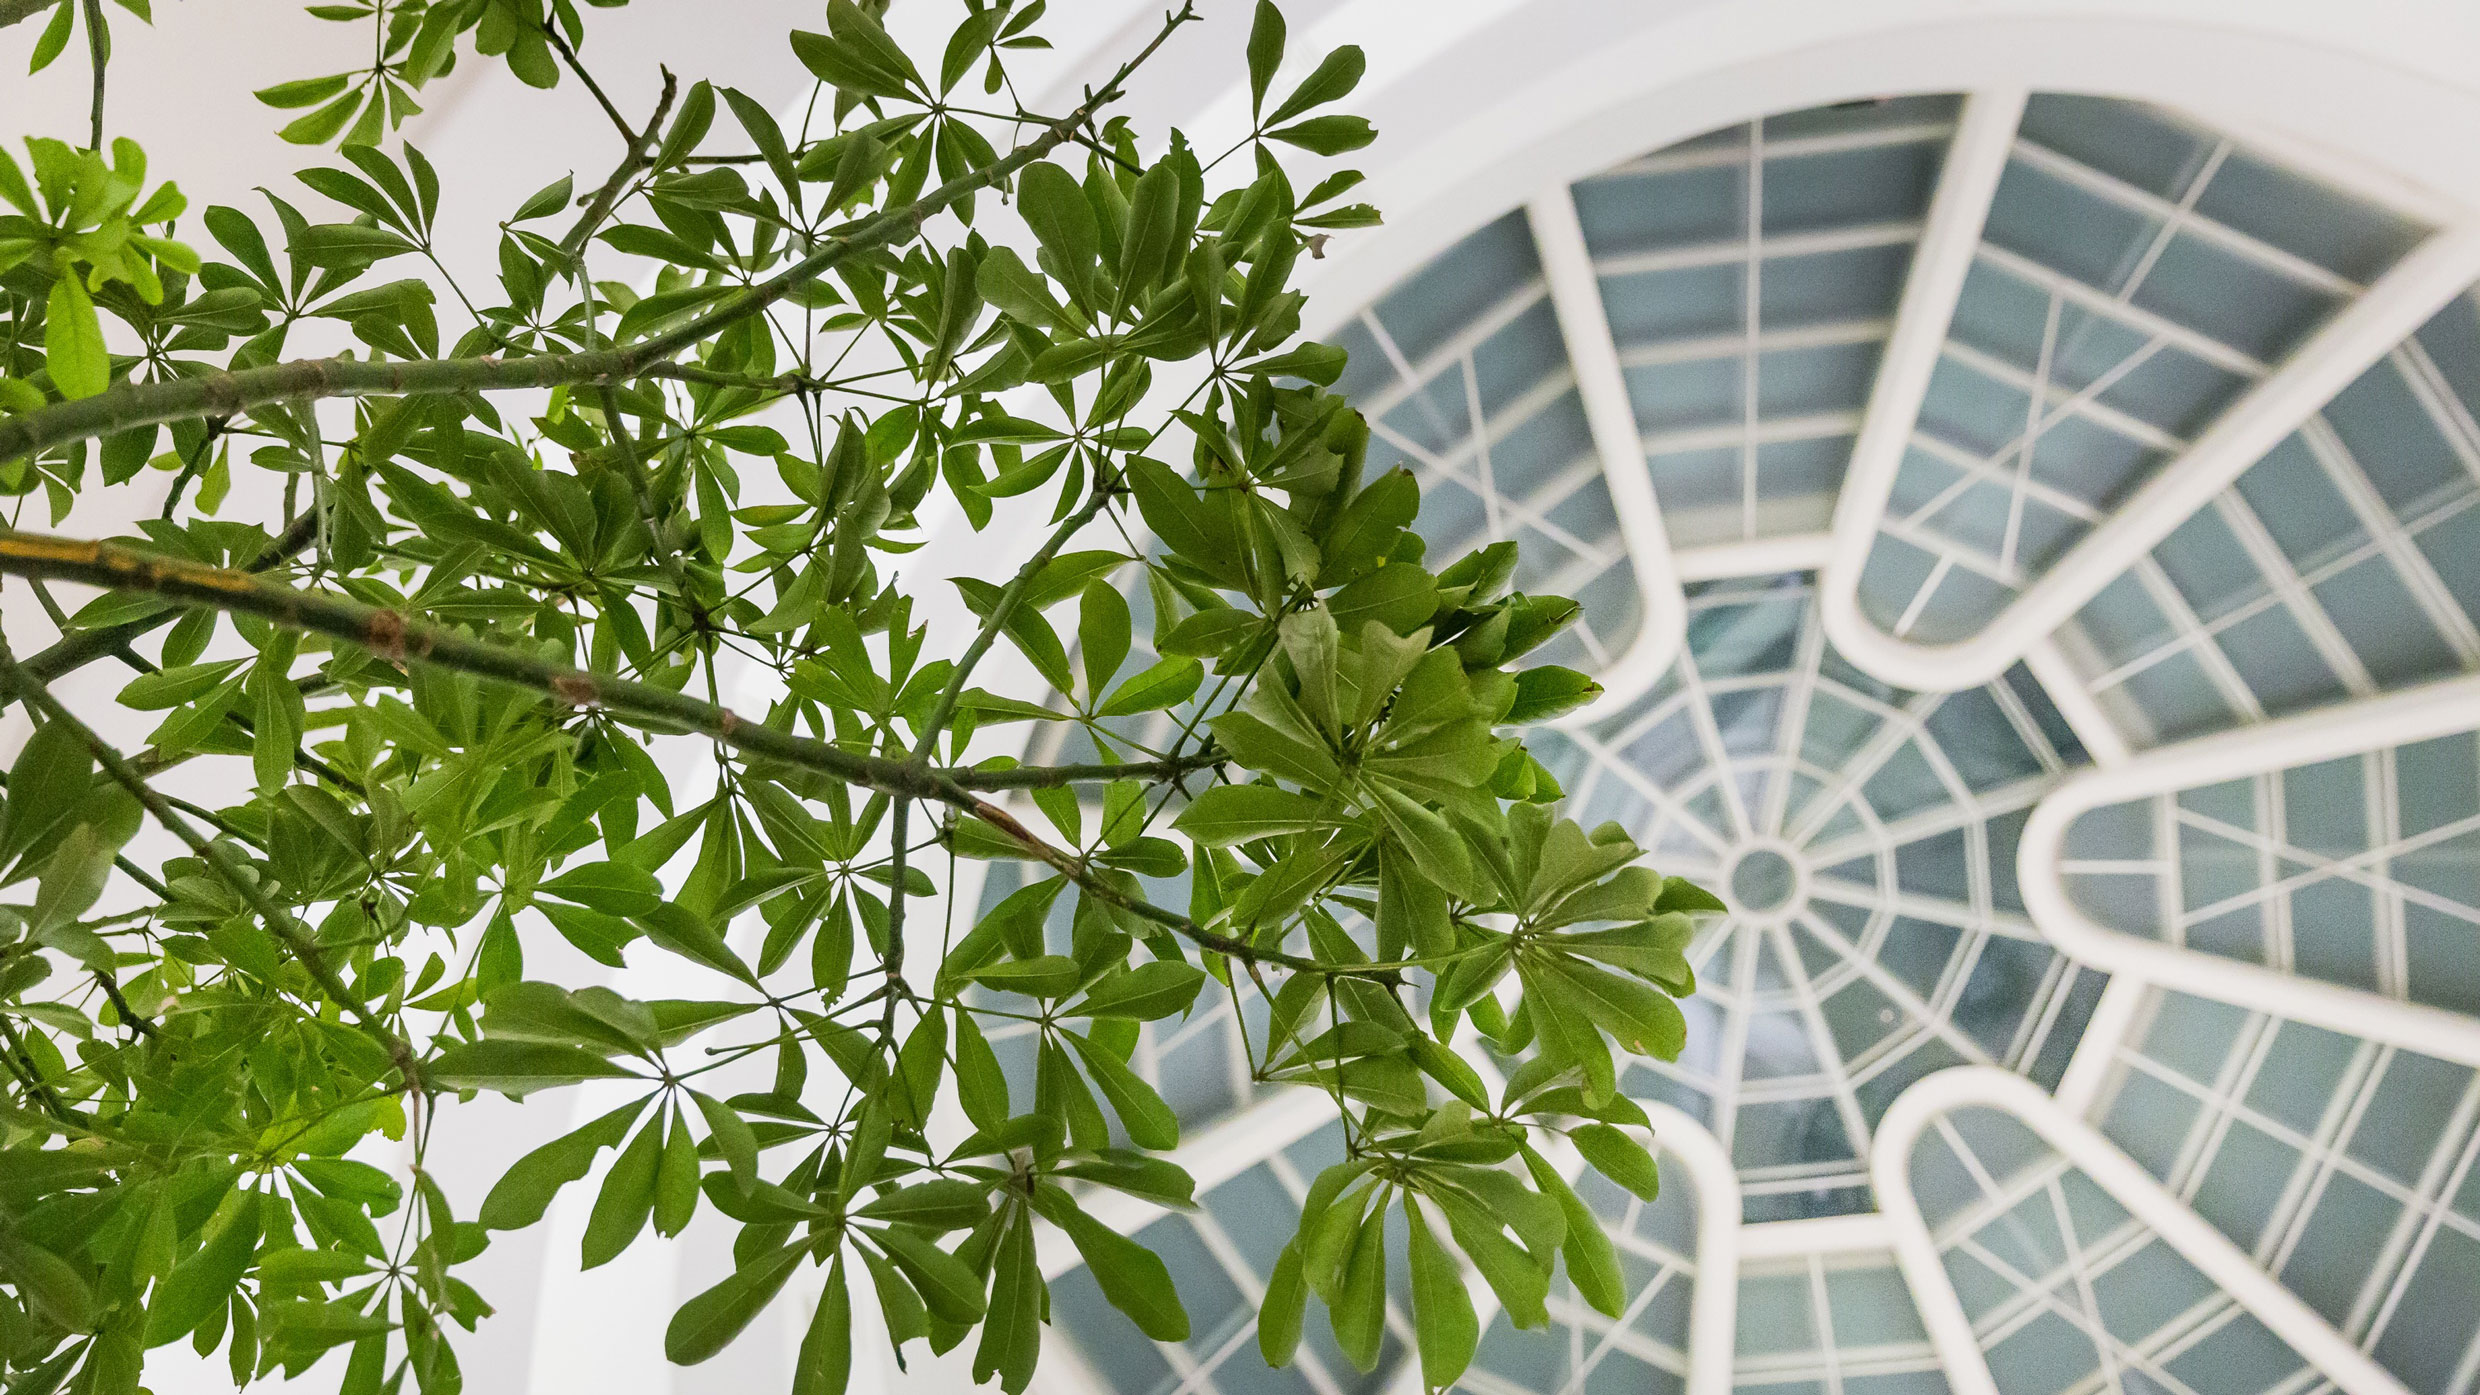 An 18-foot tree spreads its leaves beneath the oculus in the Guggenheim. Photo: Scott Rudd